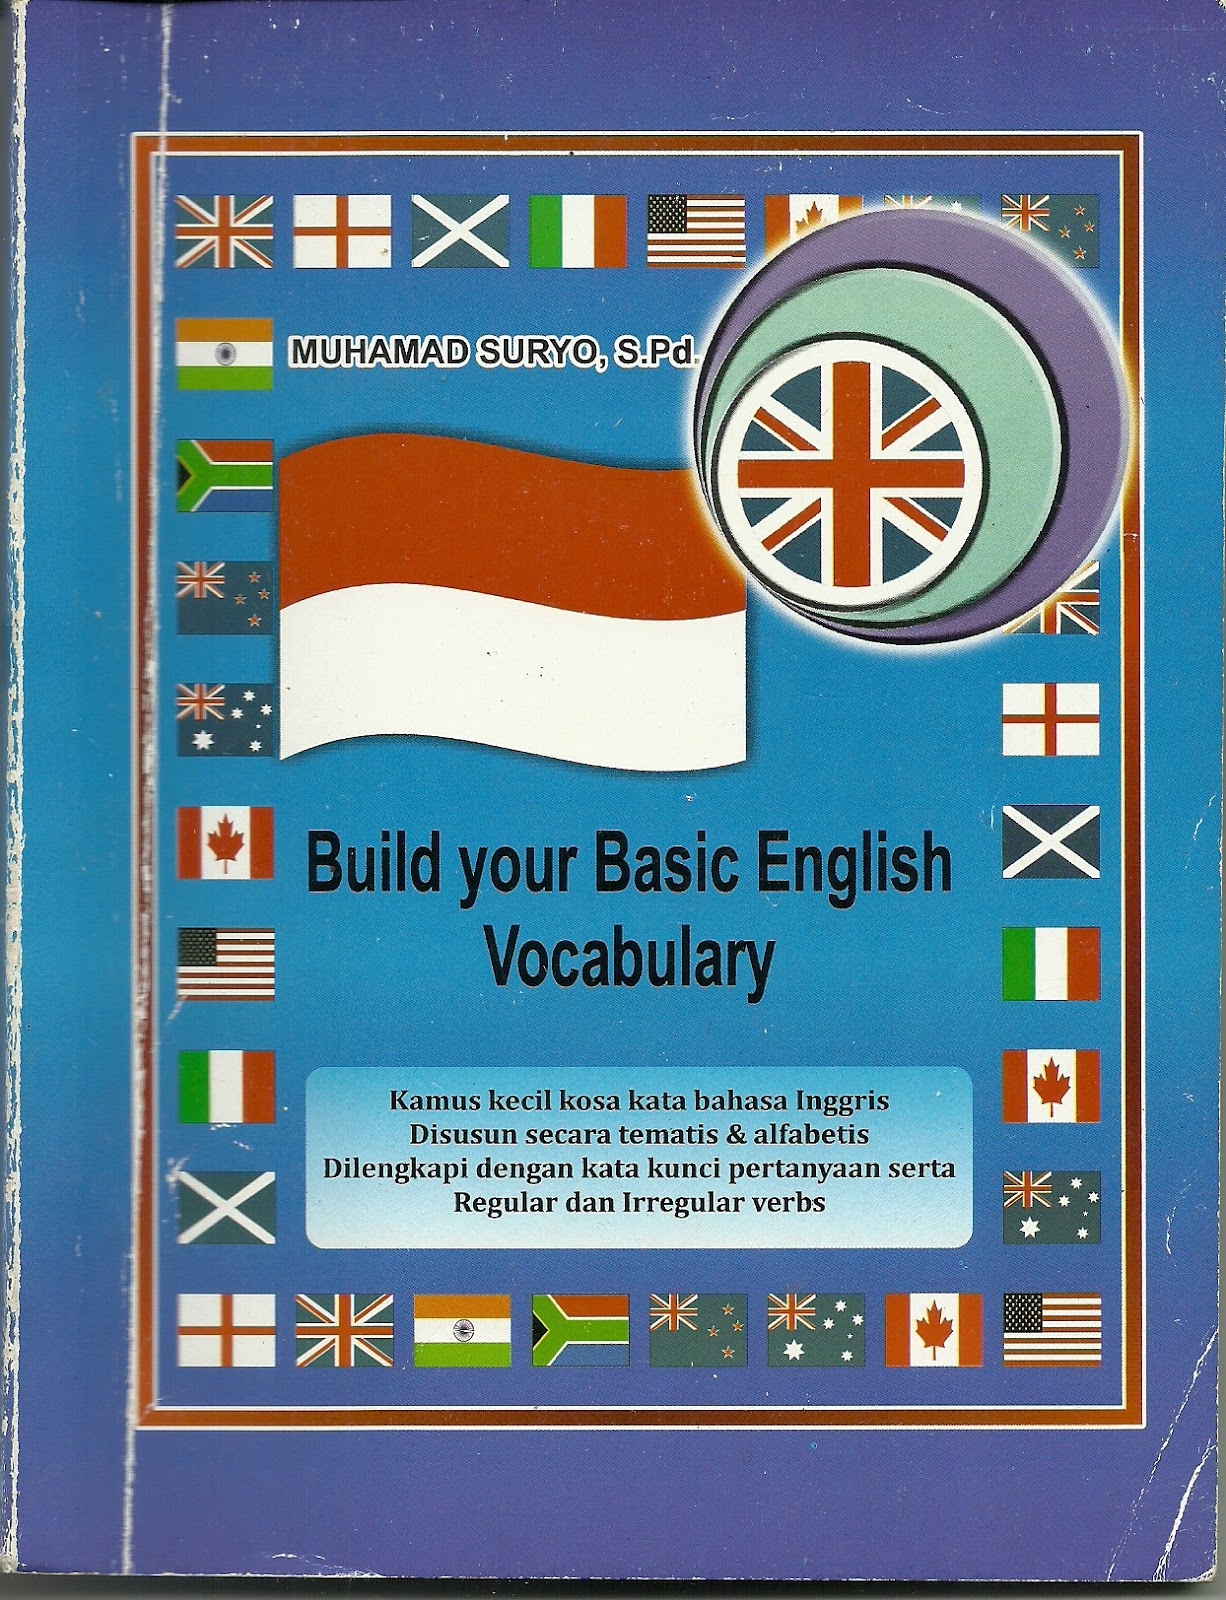 Build Your Basic Dictionary 1 By Muhammad Suryo, S.Pd